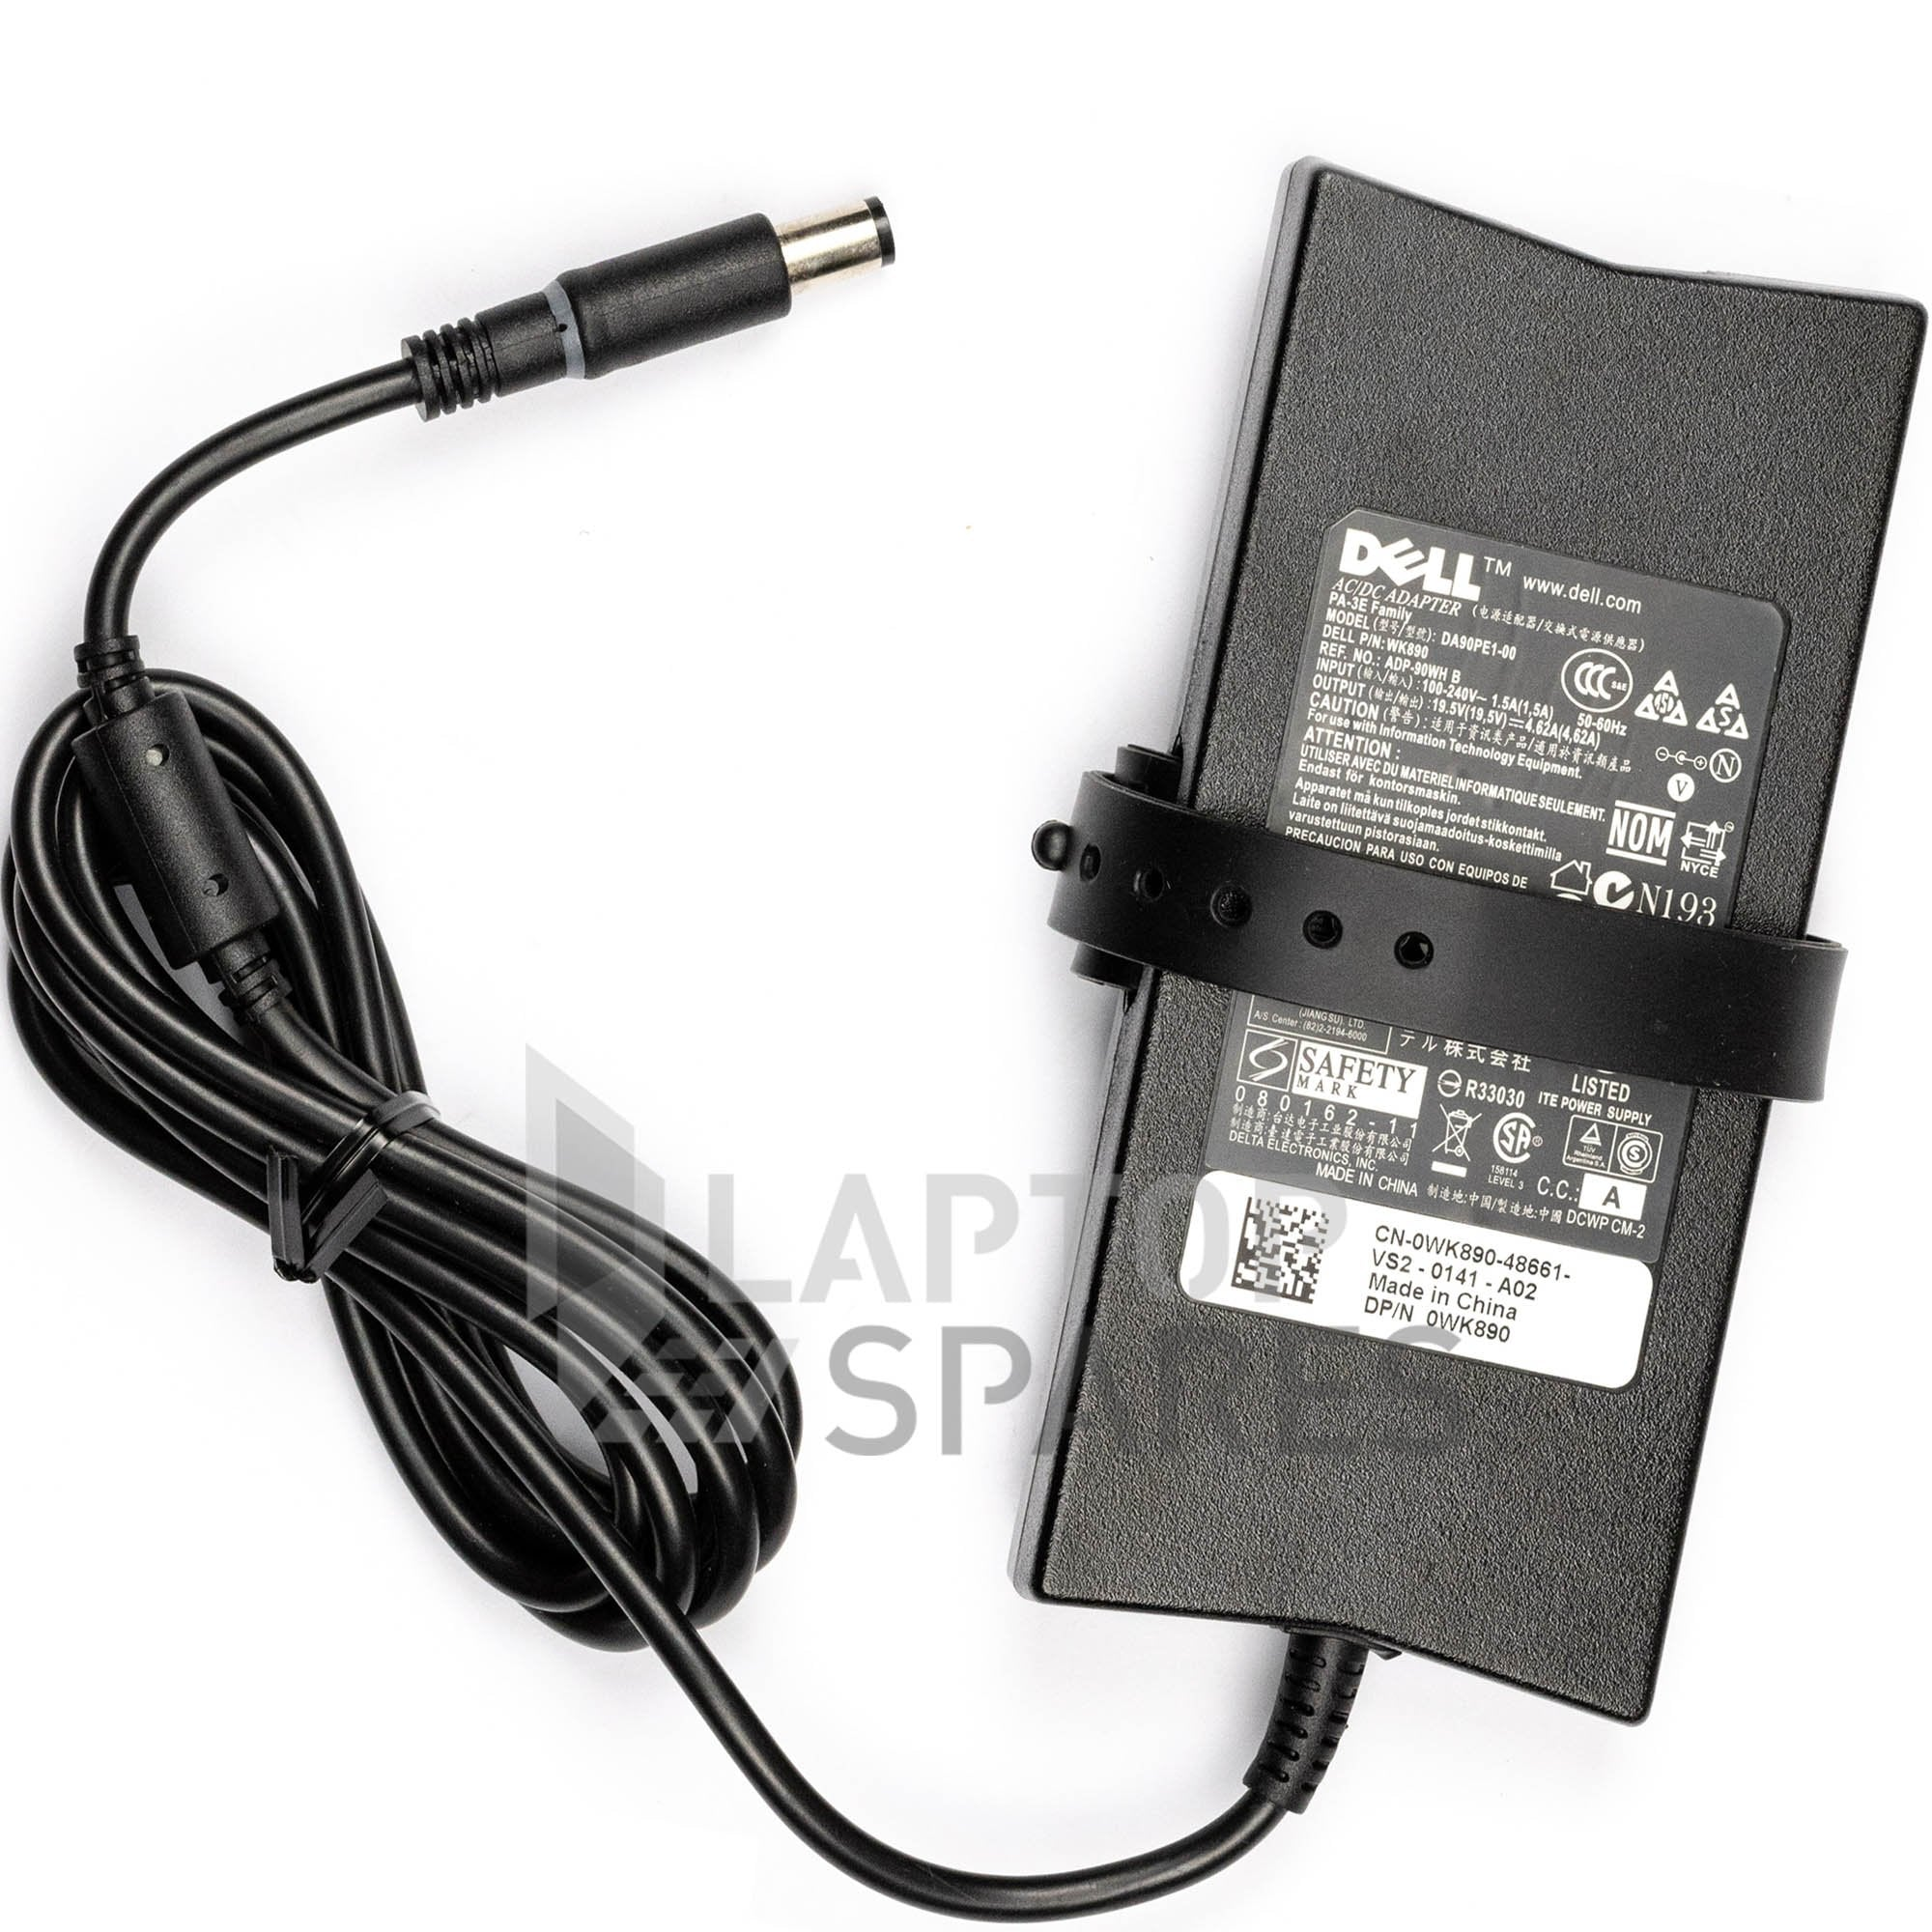 Dell Vostro 3700 3750 Laptop Slim AC Adapter Charger